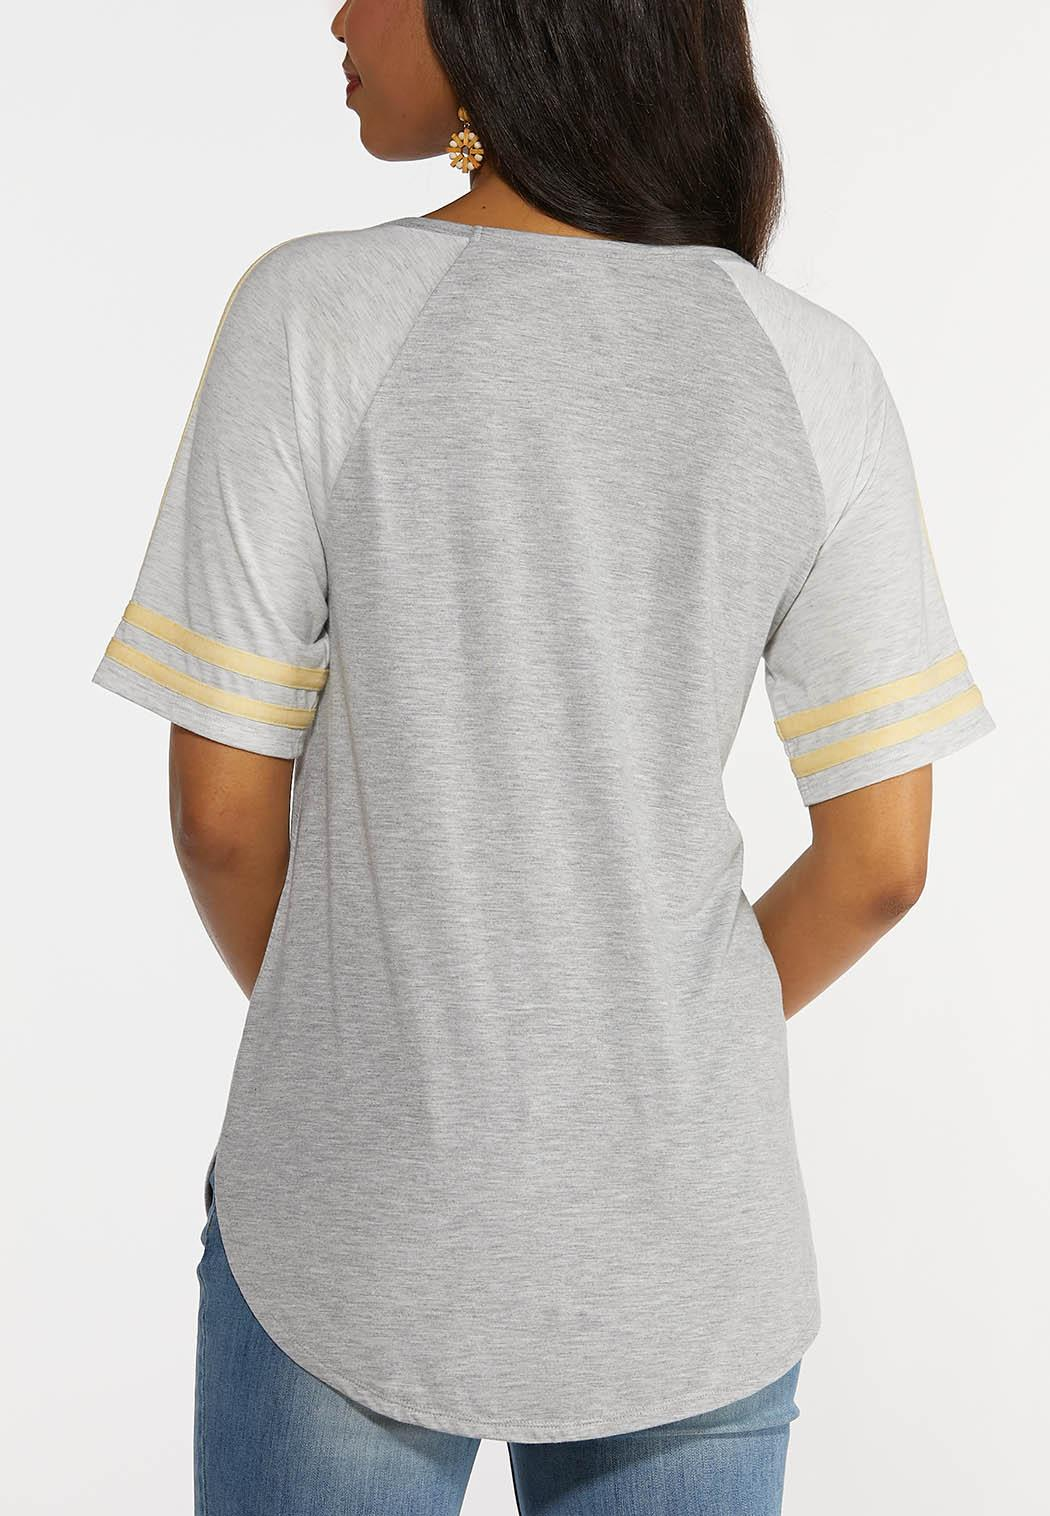 Sunny State of Mind Tee (Item #44303096)